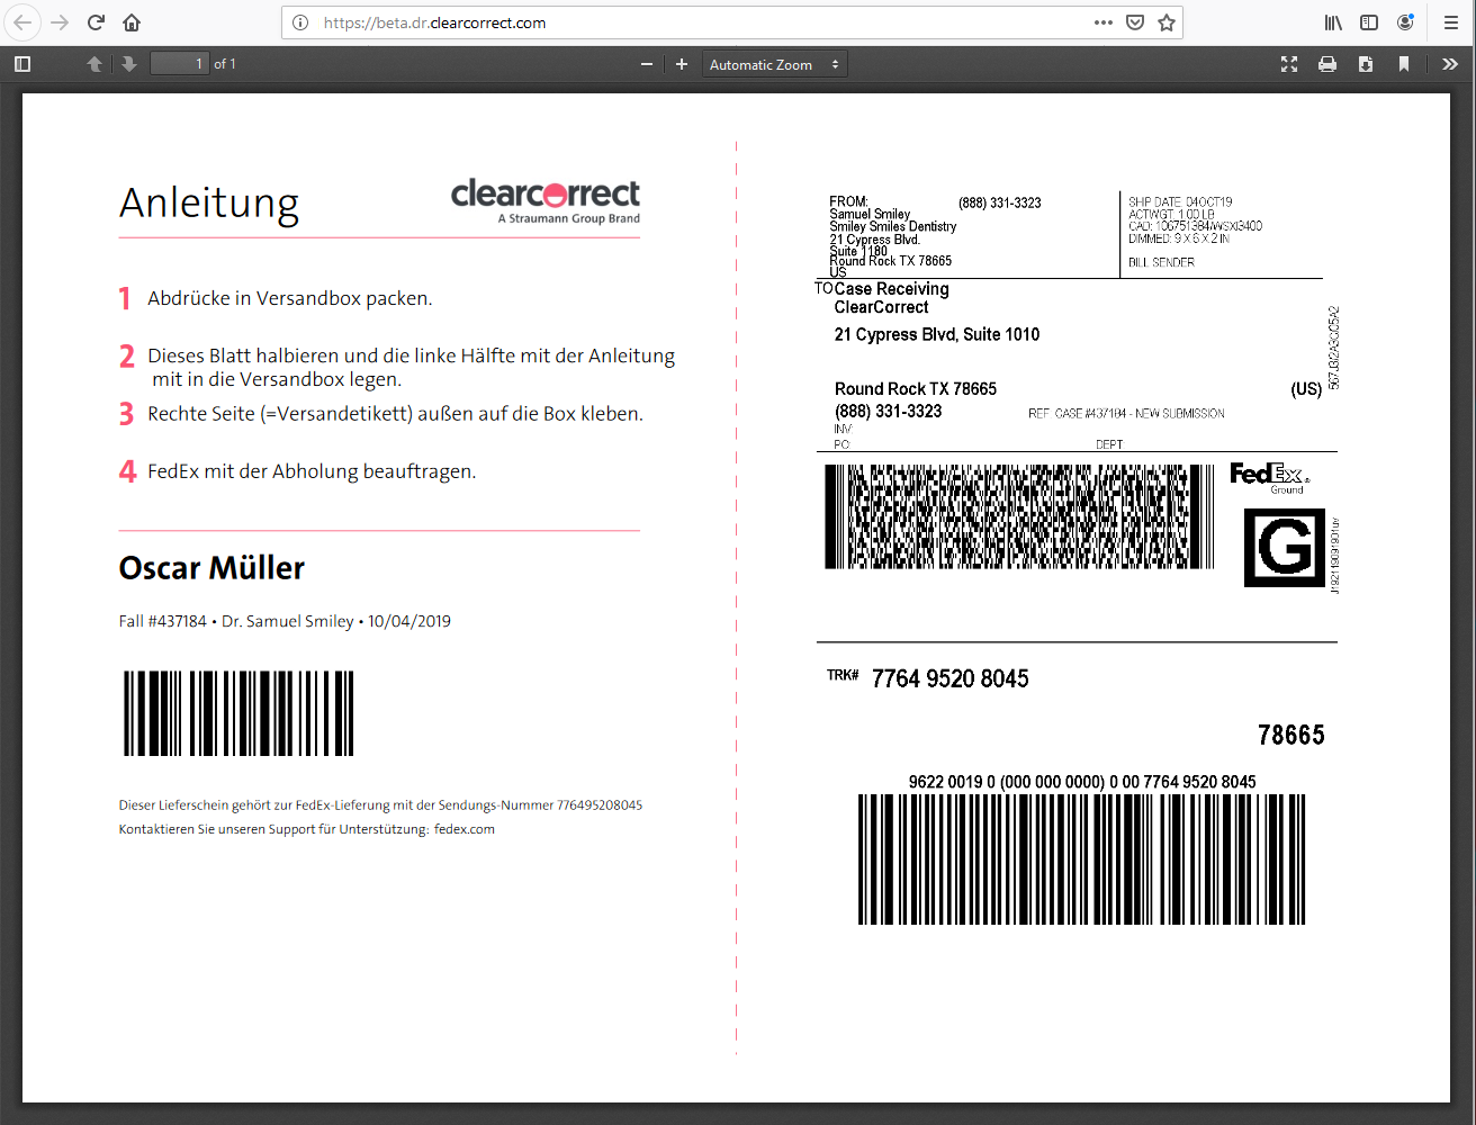 Shipping_label_-_Packing_slip_-_with_header_-_DE.png